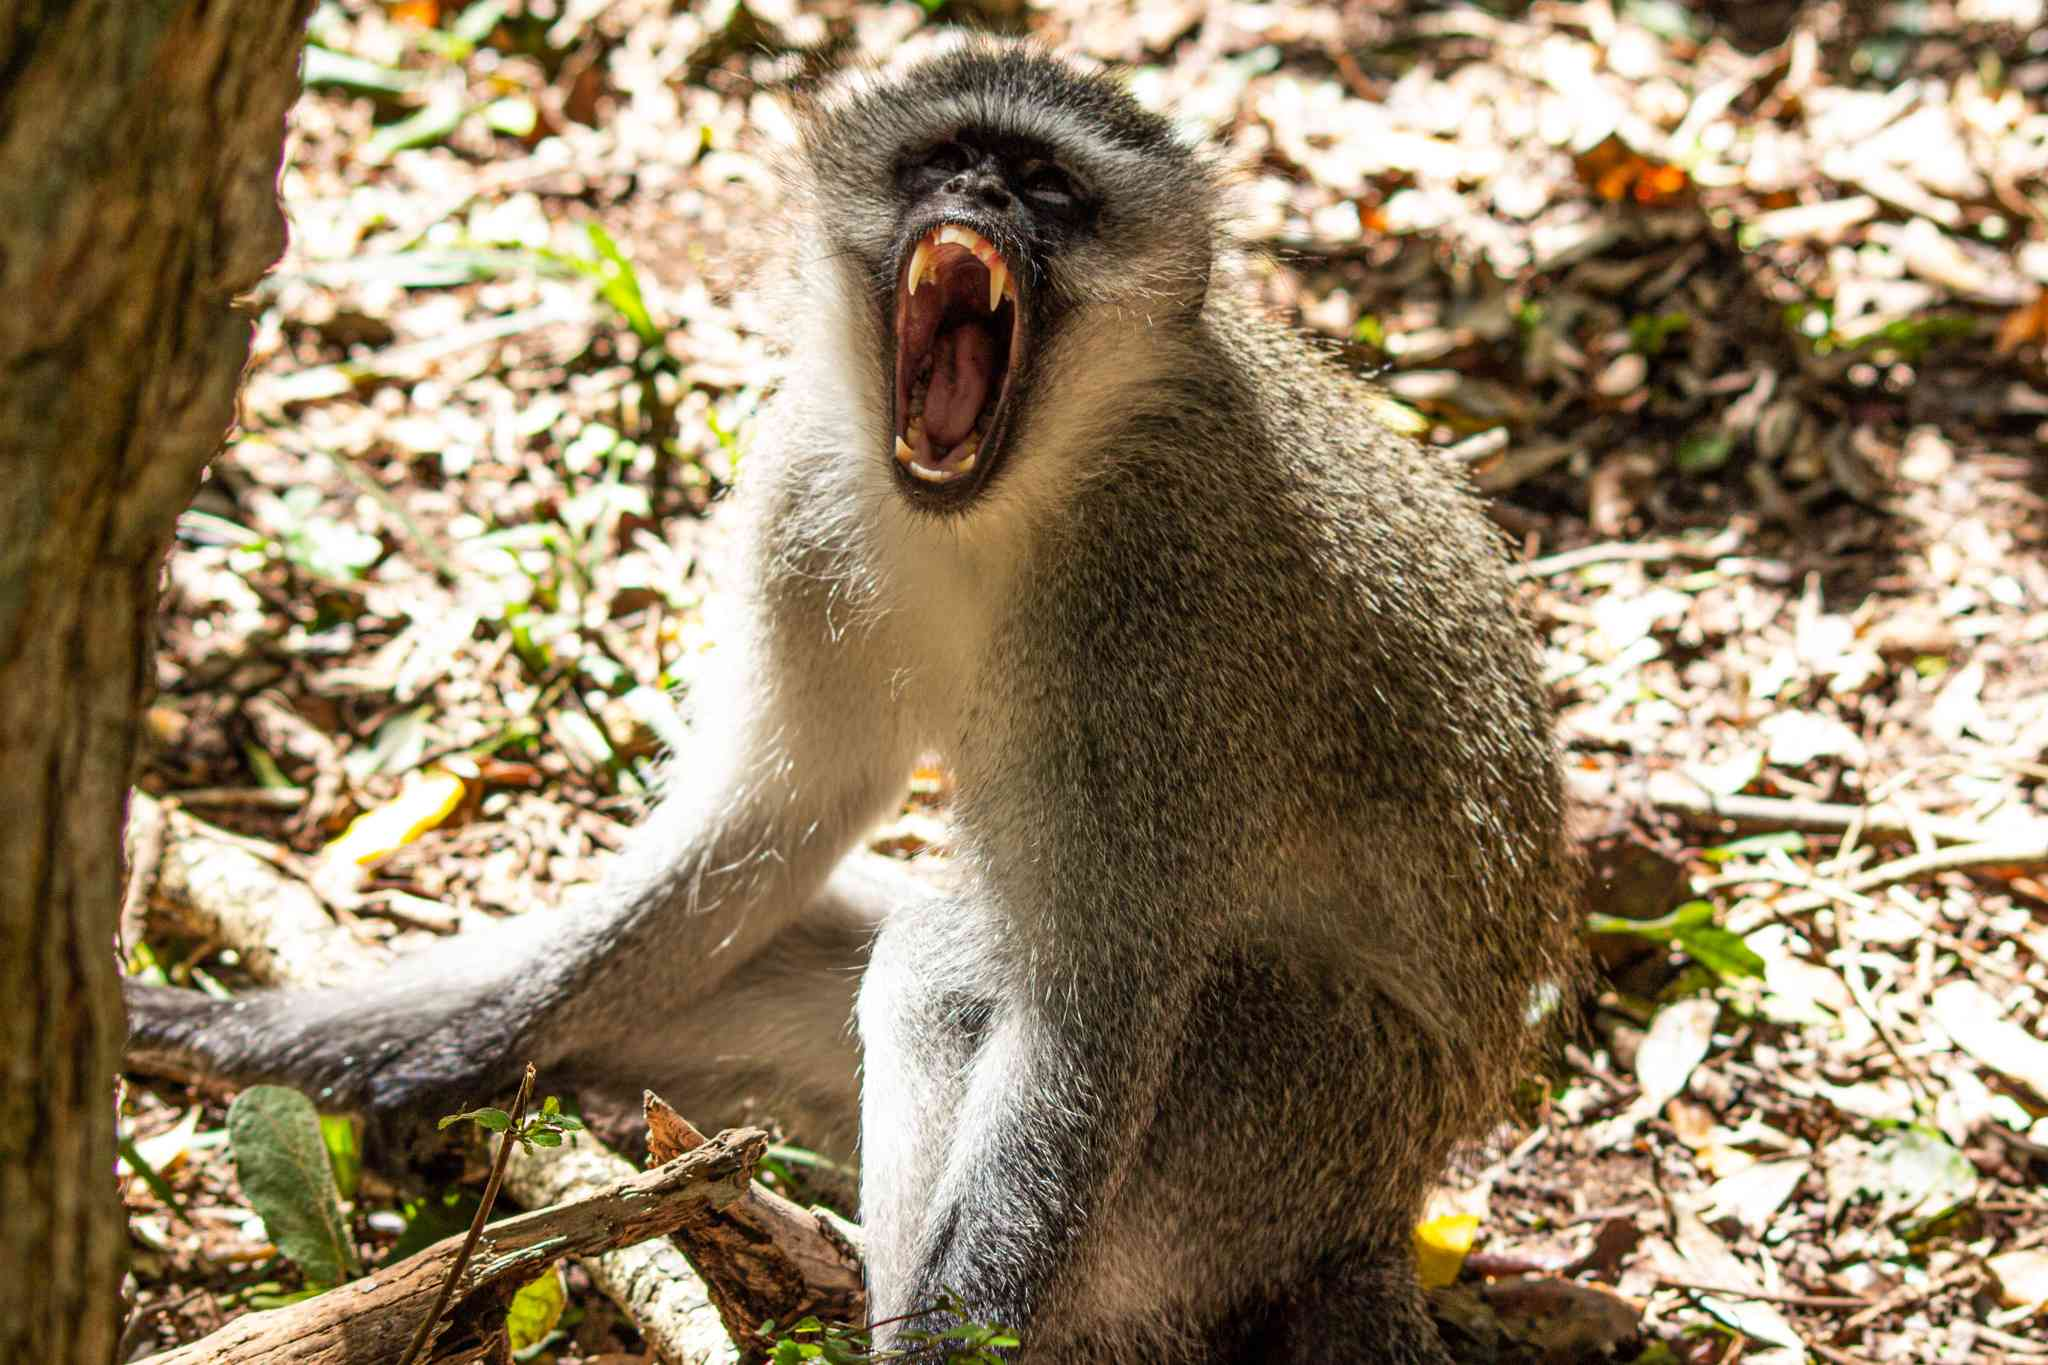 a monkey showing its teeth in the forest